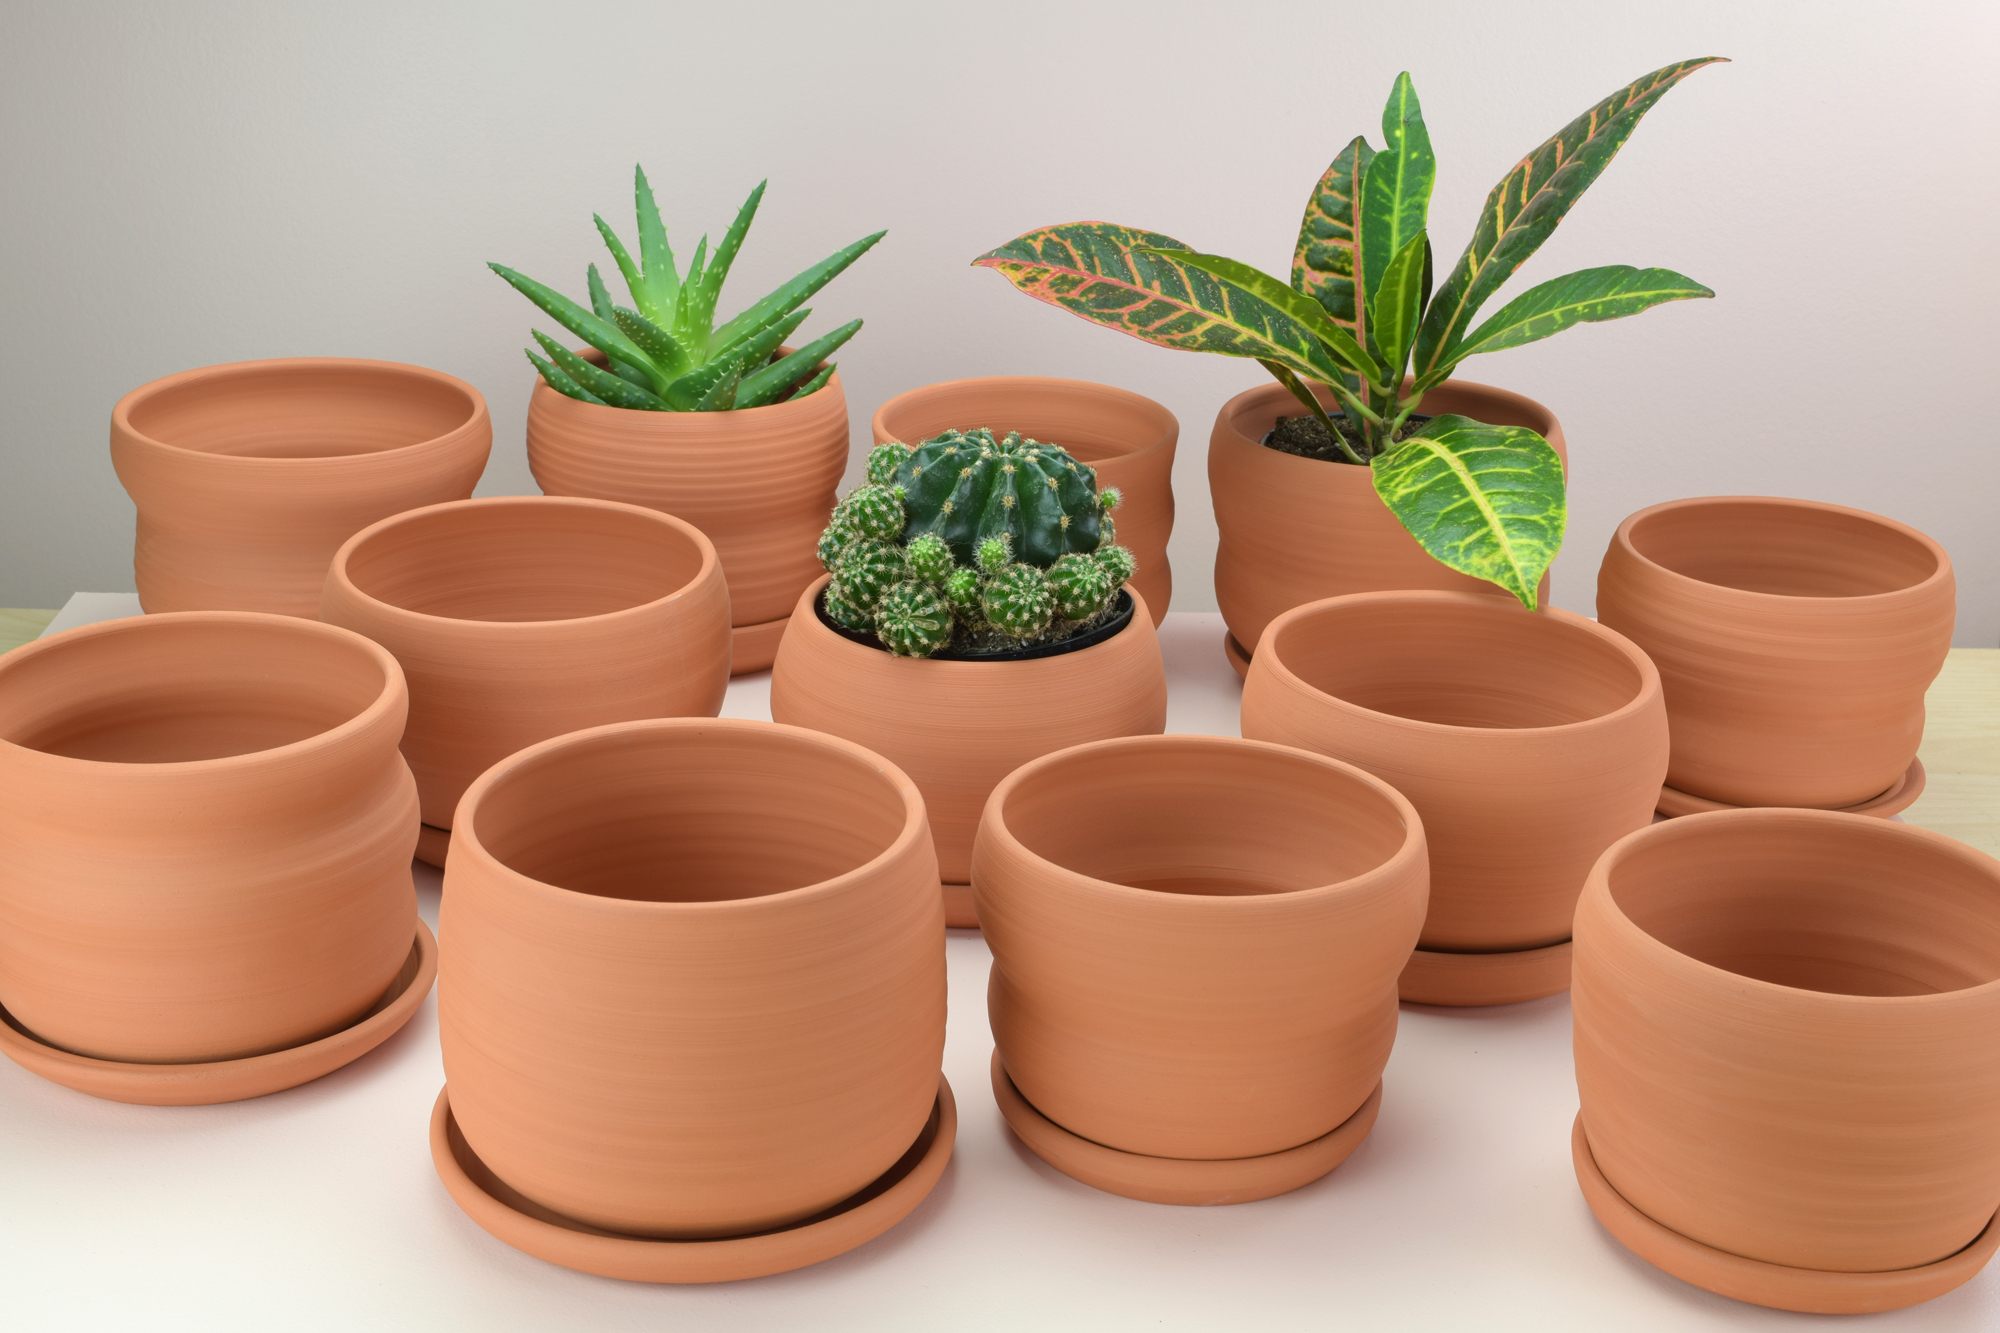 terracotta-planter-group-tanyadoodyceramics.jpg